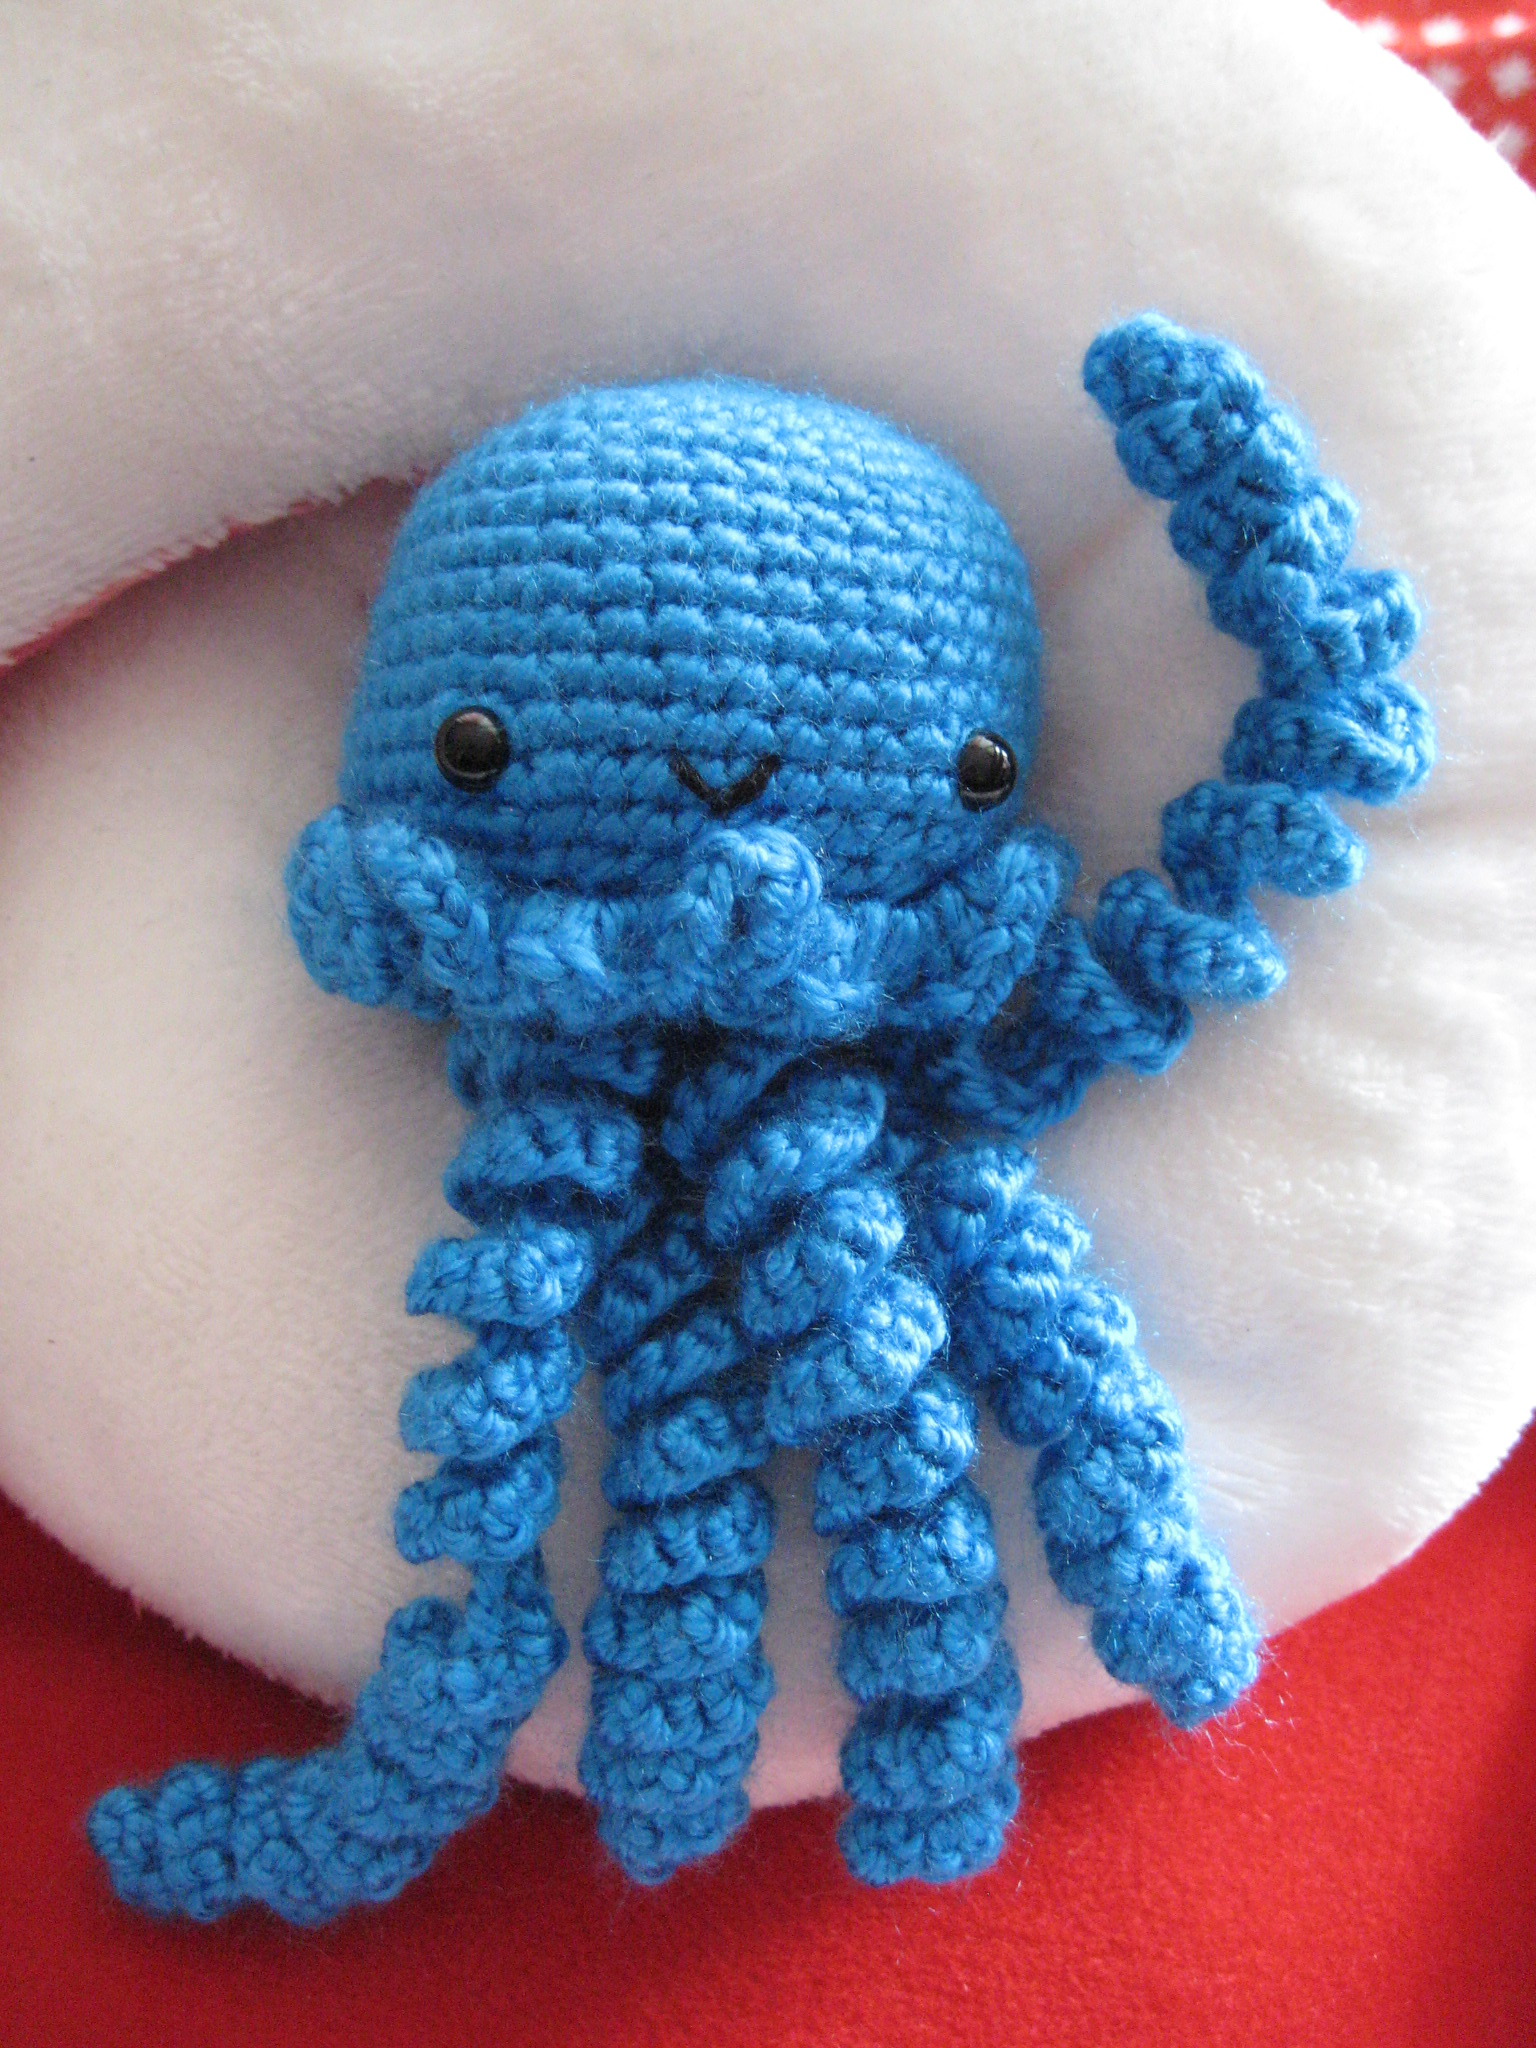 Crochet pattern jellyfish dancox for 301 moved permanently crochet pattern jellyfish bankloansurffo Choice Image